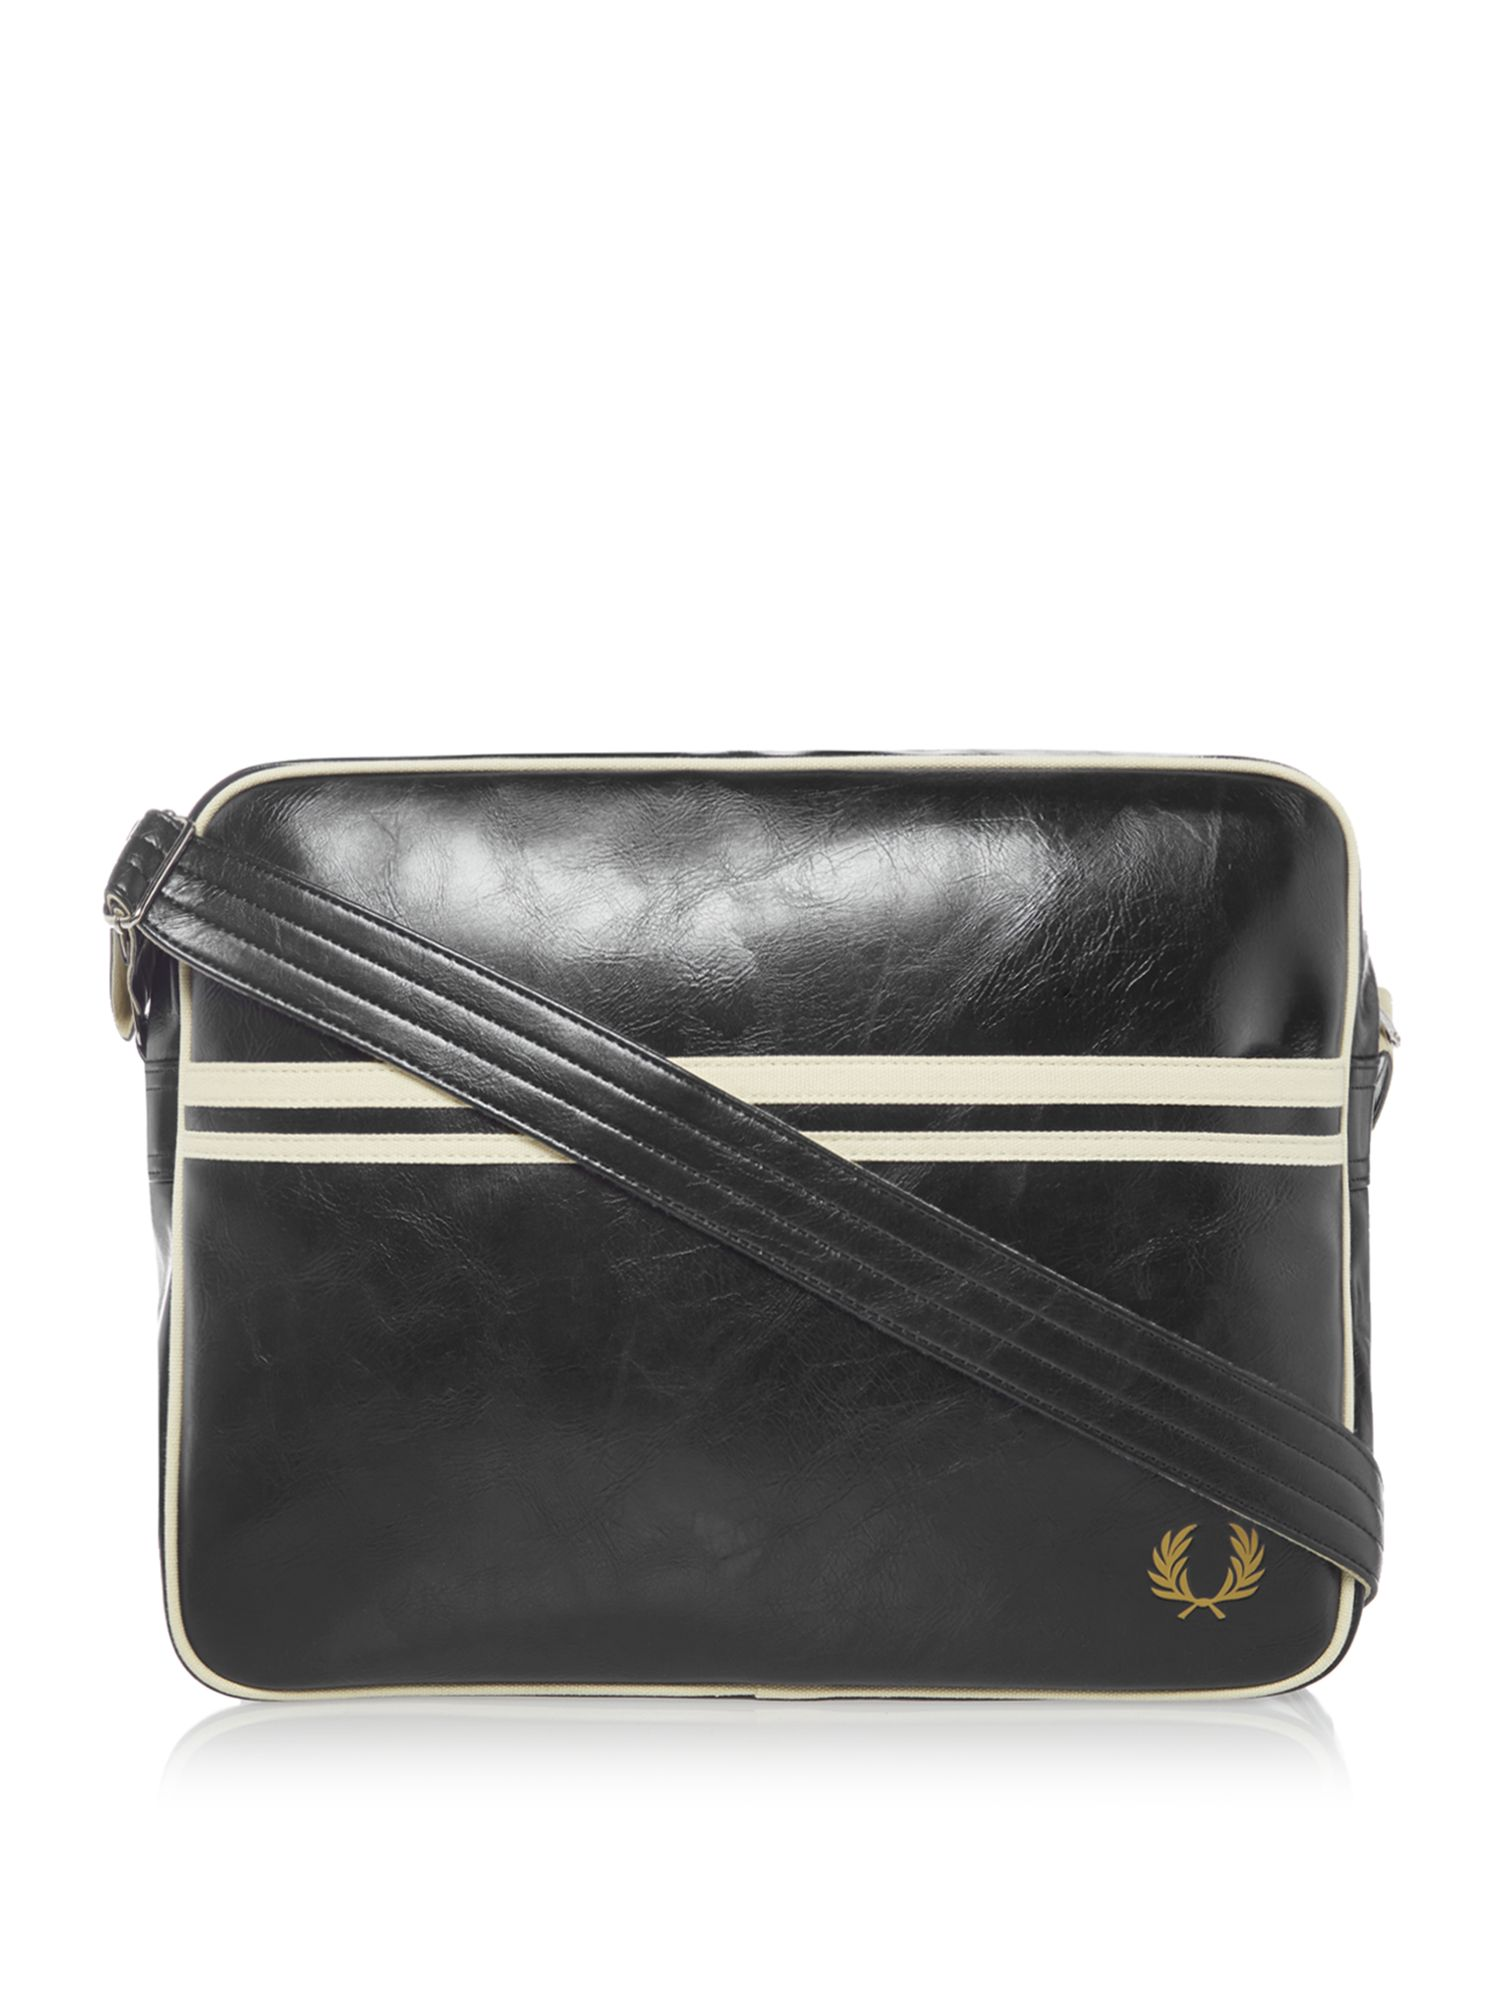 Fred Perry Classic Shoulder Bag, Black